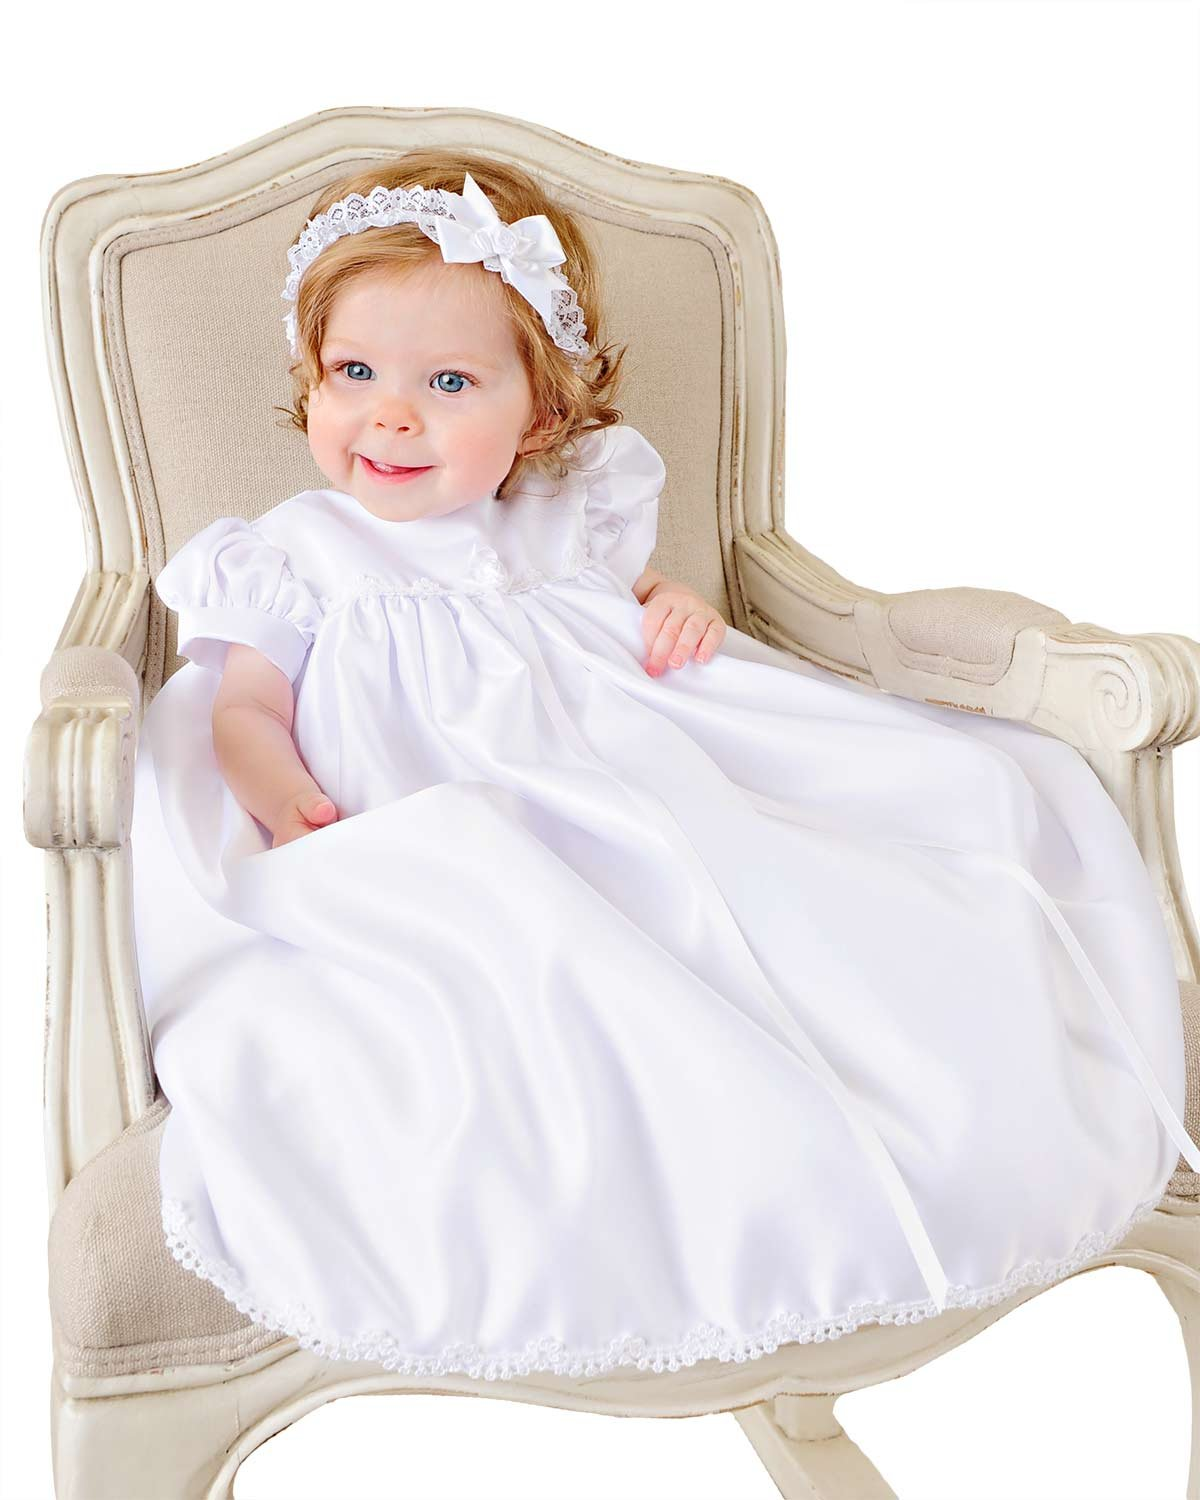 Satin 6 Month Christening, Baptism or Blessing Gowns. Made in the USA